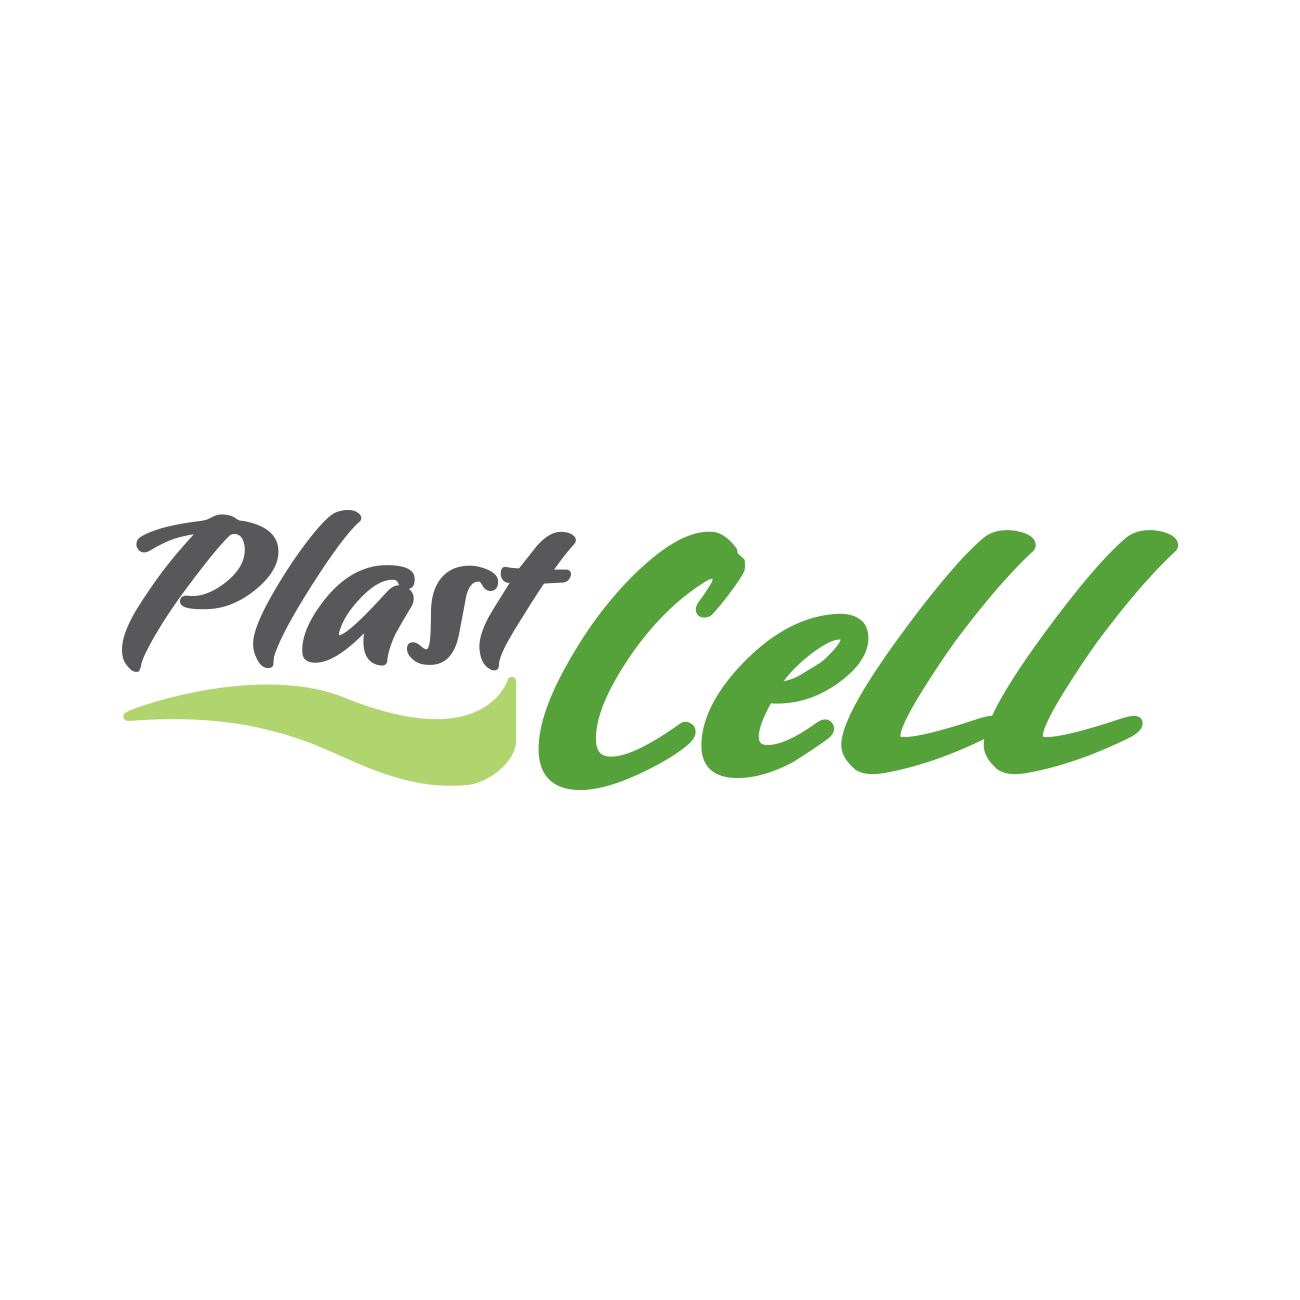 plastcell